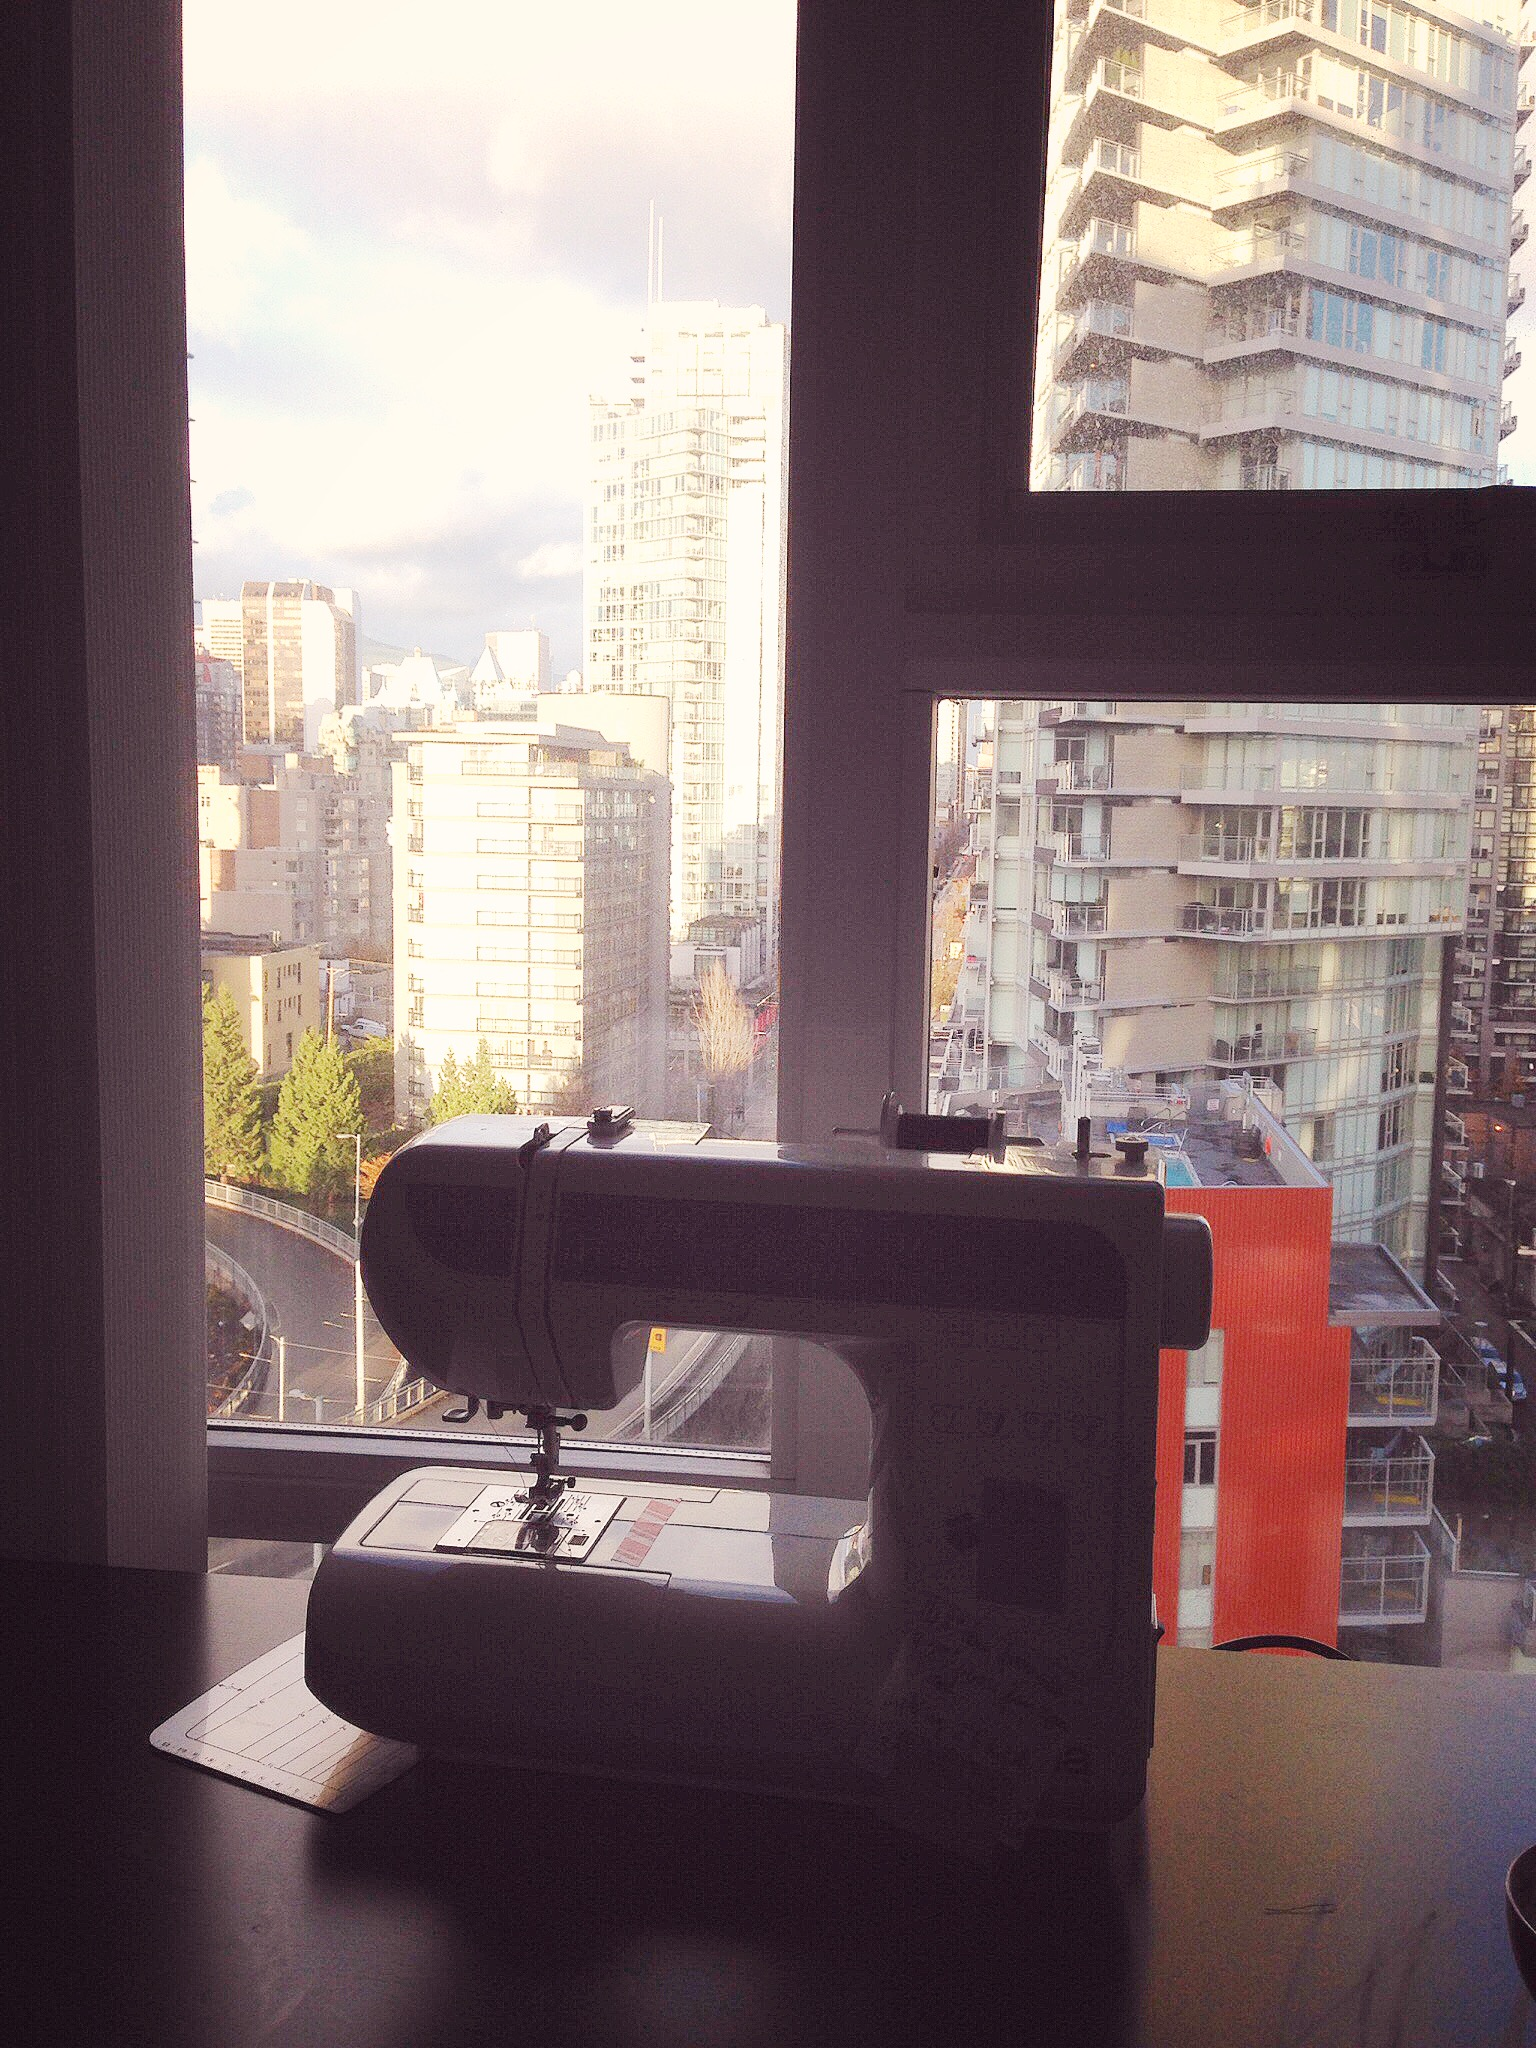 Ethan over looking our sewing window, the best part of the craft room is the natural light that floods in from the long windows and the view of the city and mountains on clear days.